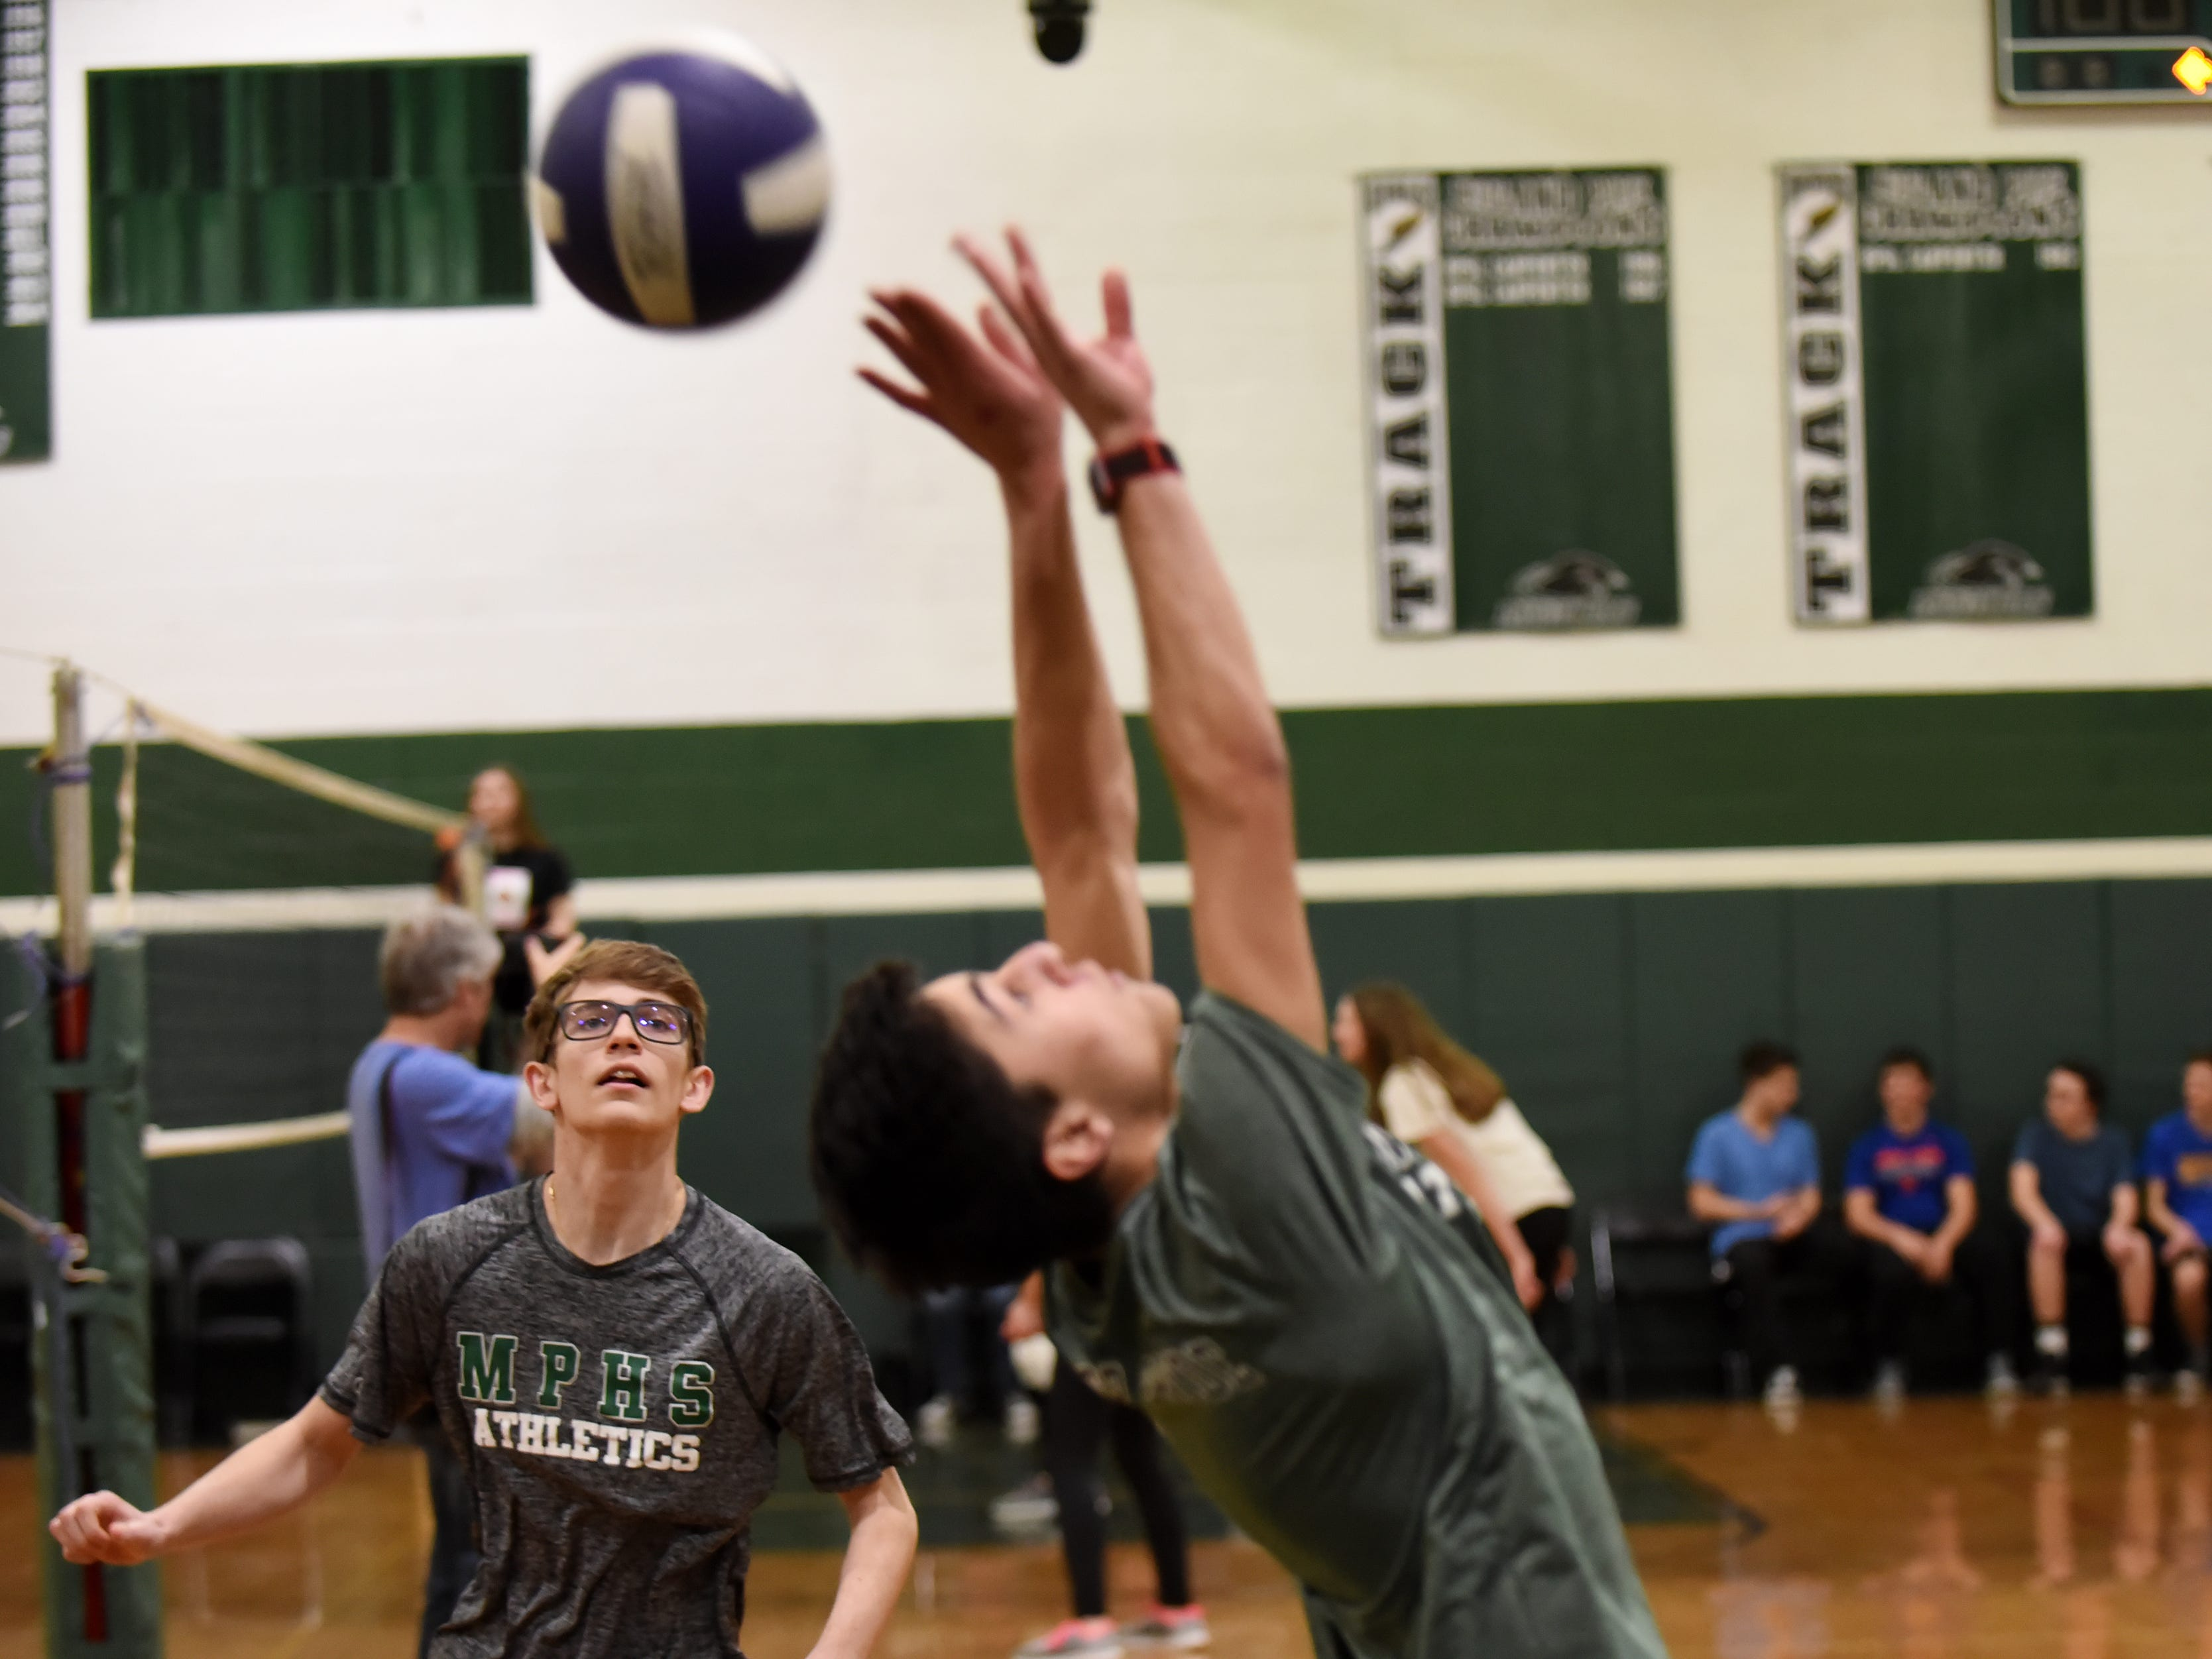 A Fundraising Volleyball Tournament is heald at Midland Park High School in Midland Park on Saturday February 9, 2019. The event is to raise money for the families of two young people seriously injured in an auto accident in December.